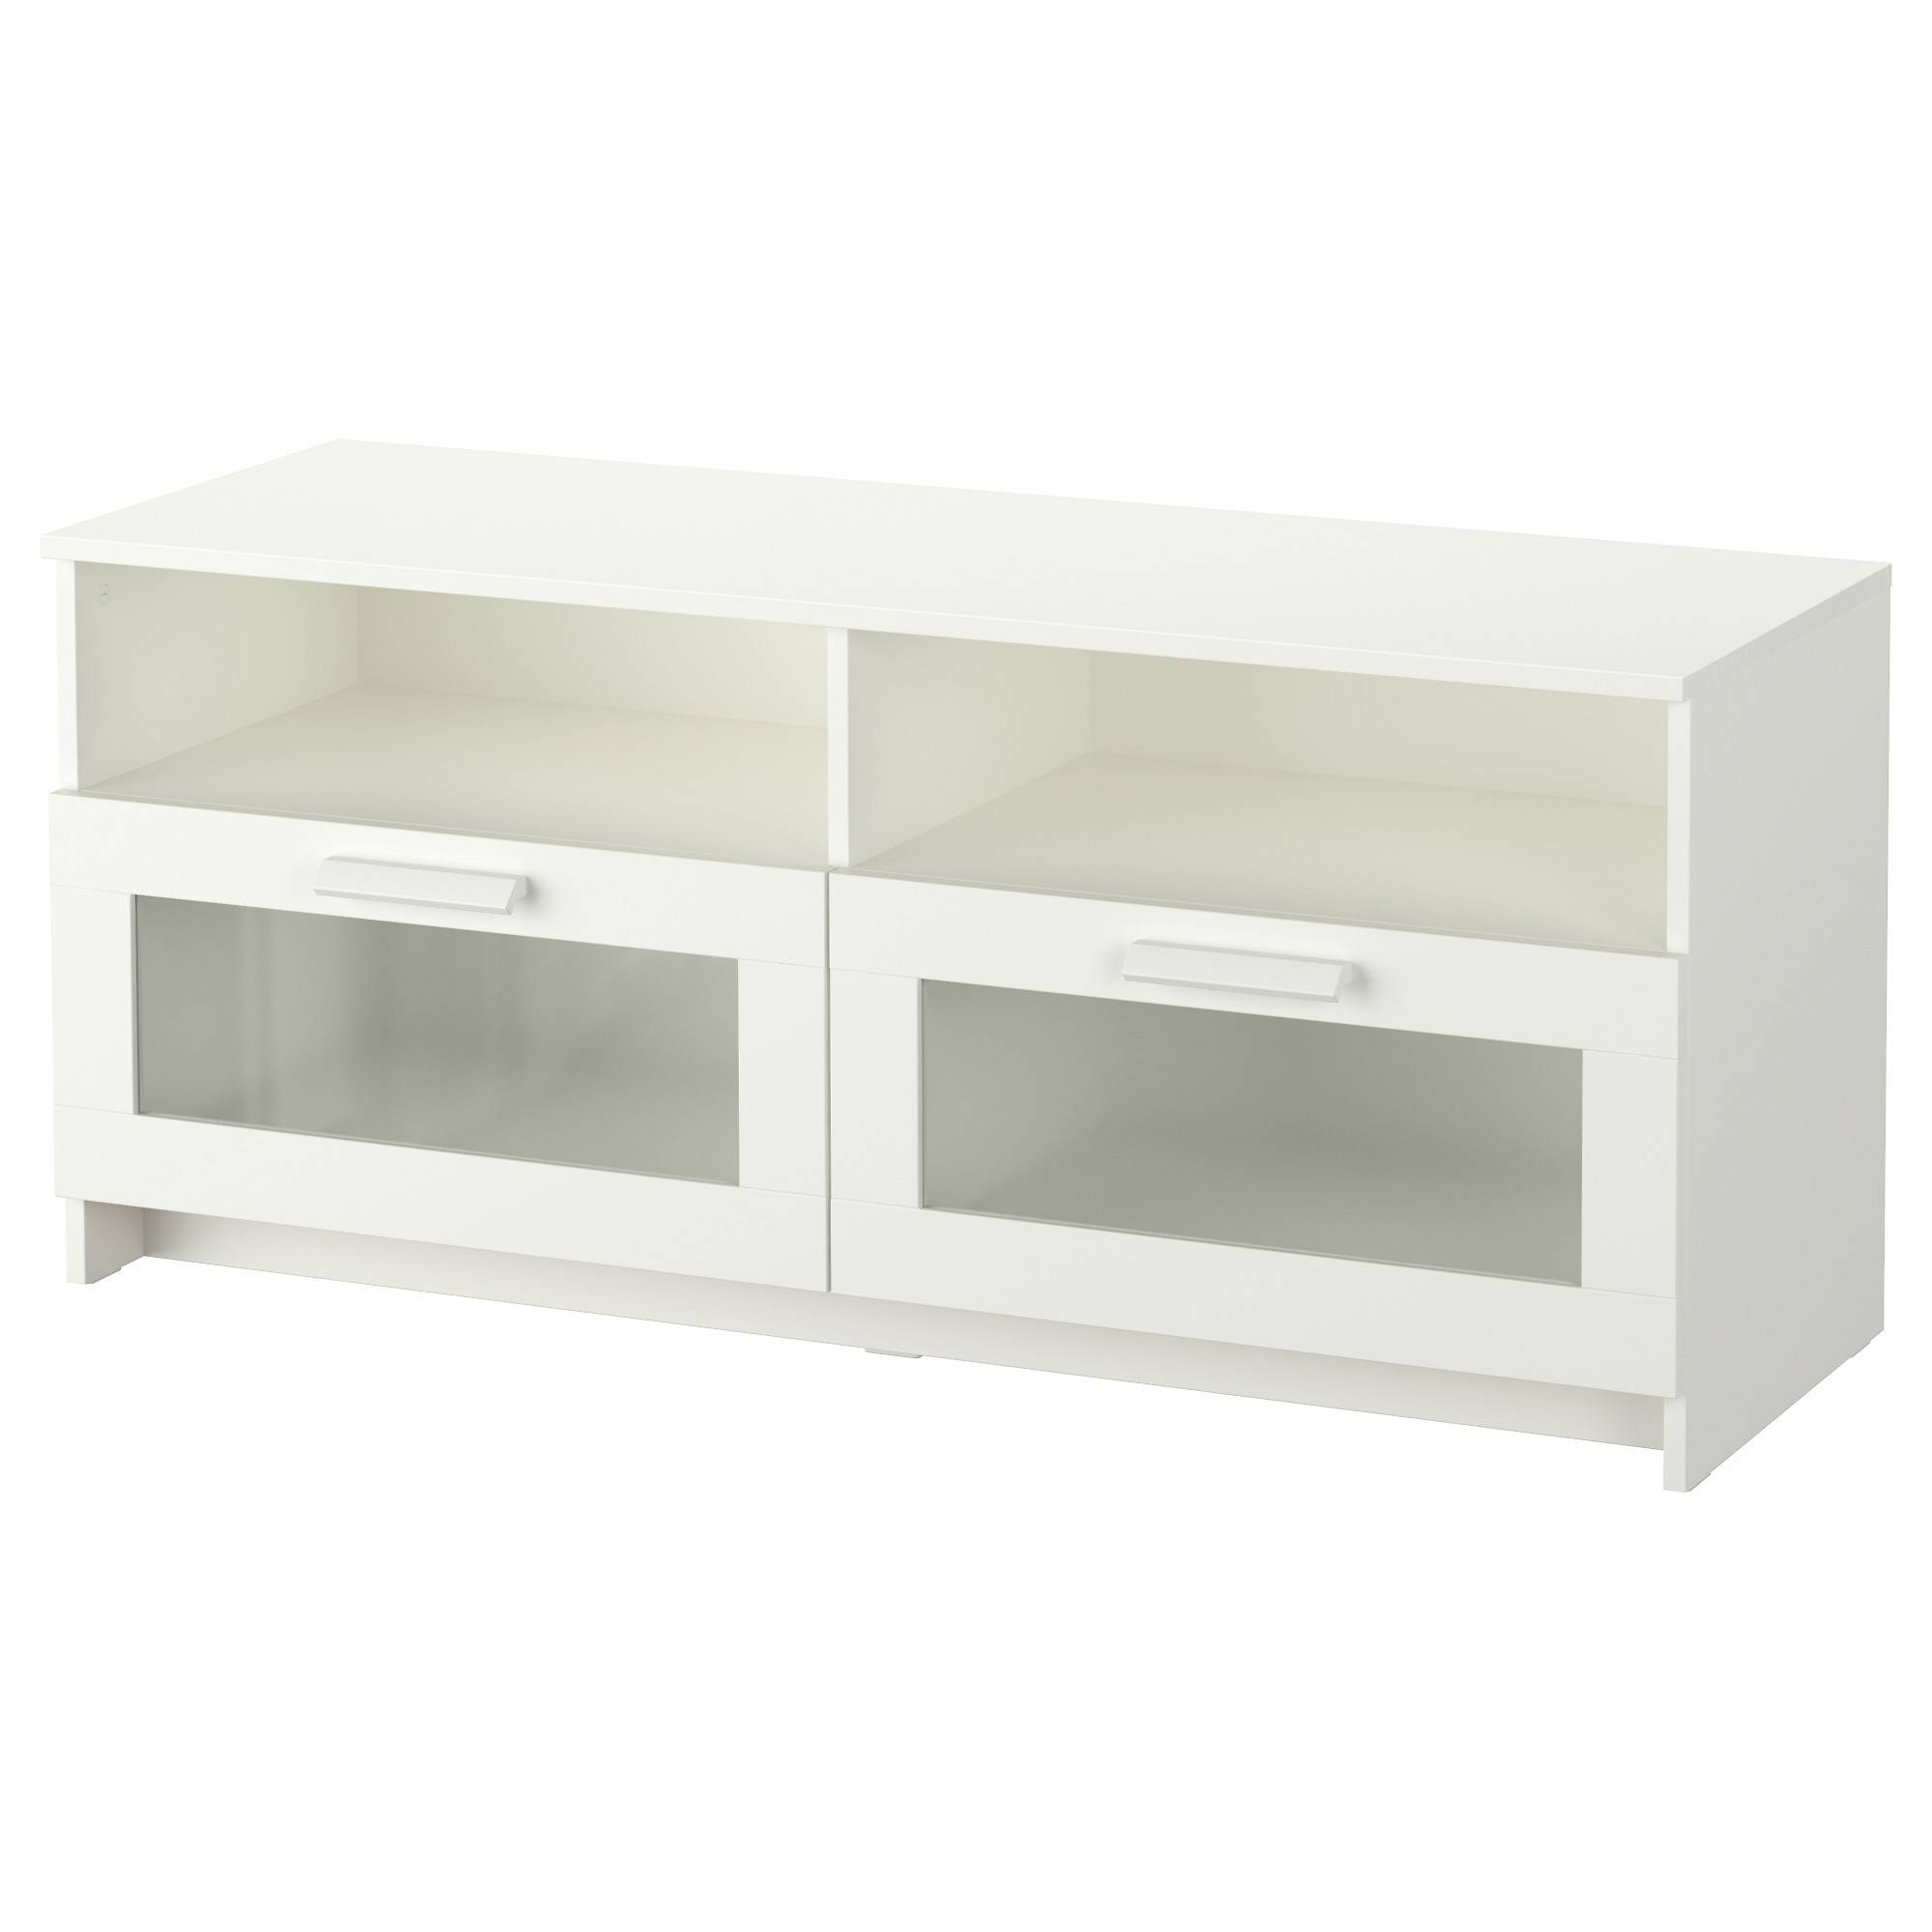 Brimnes Tv Unit - White - Ikea intended for Long White Tv Stands (Image 6 of 15)